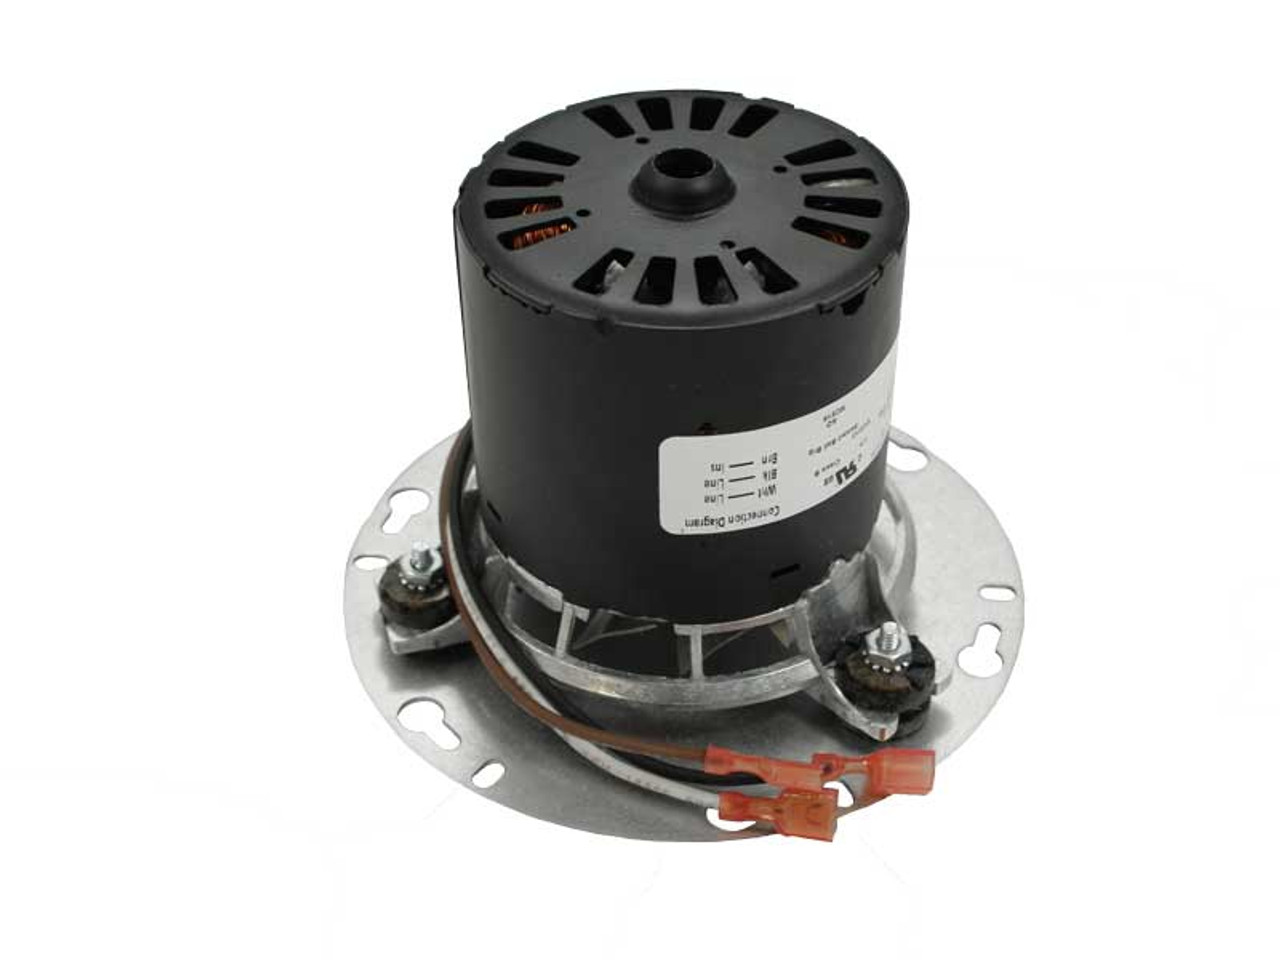 St Croix Combustion Blower Motor (10-1109)